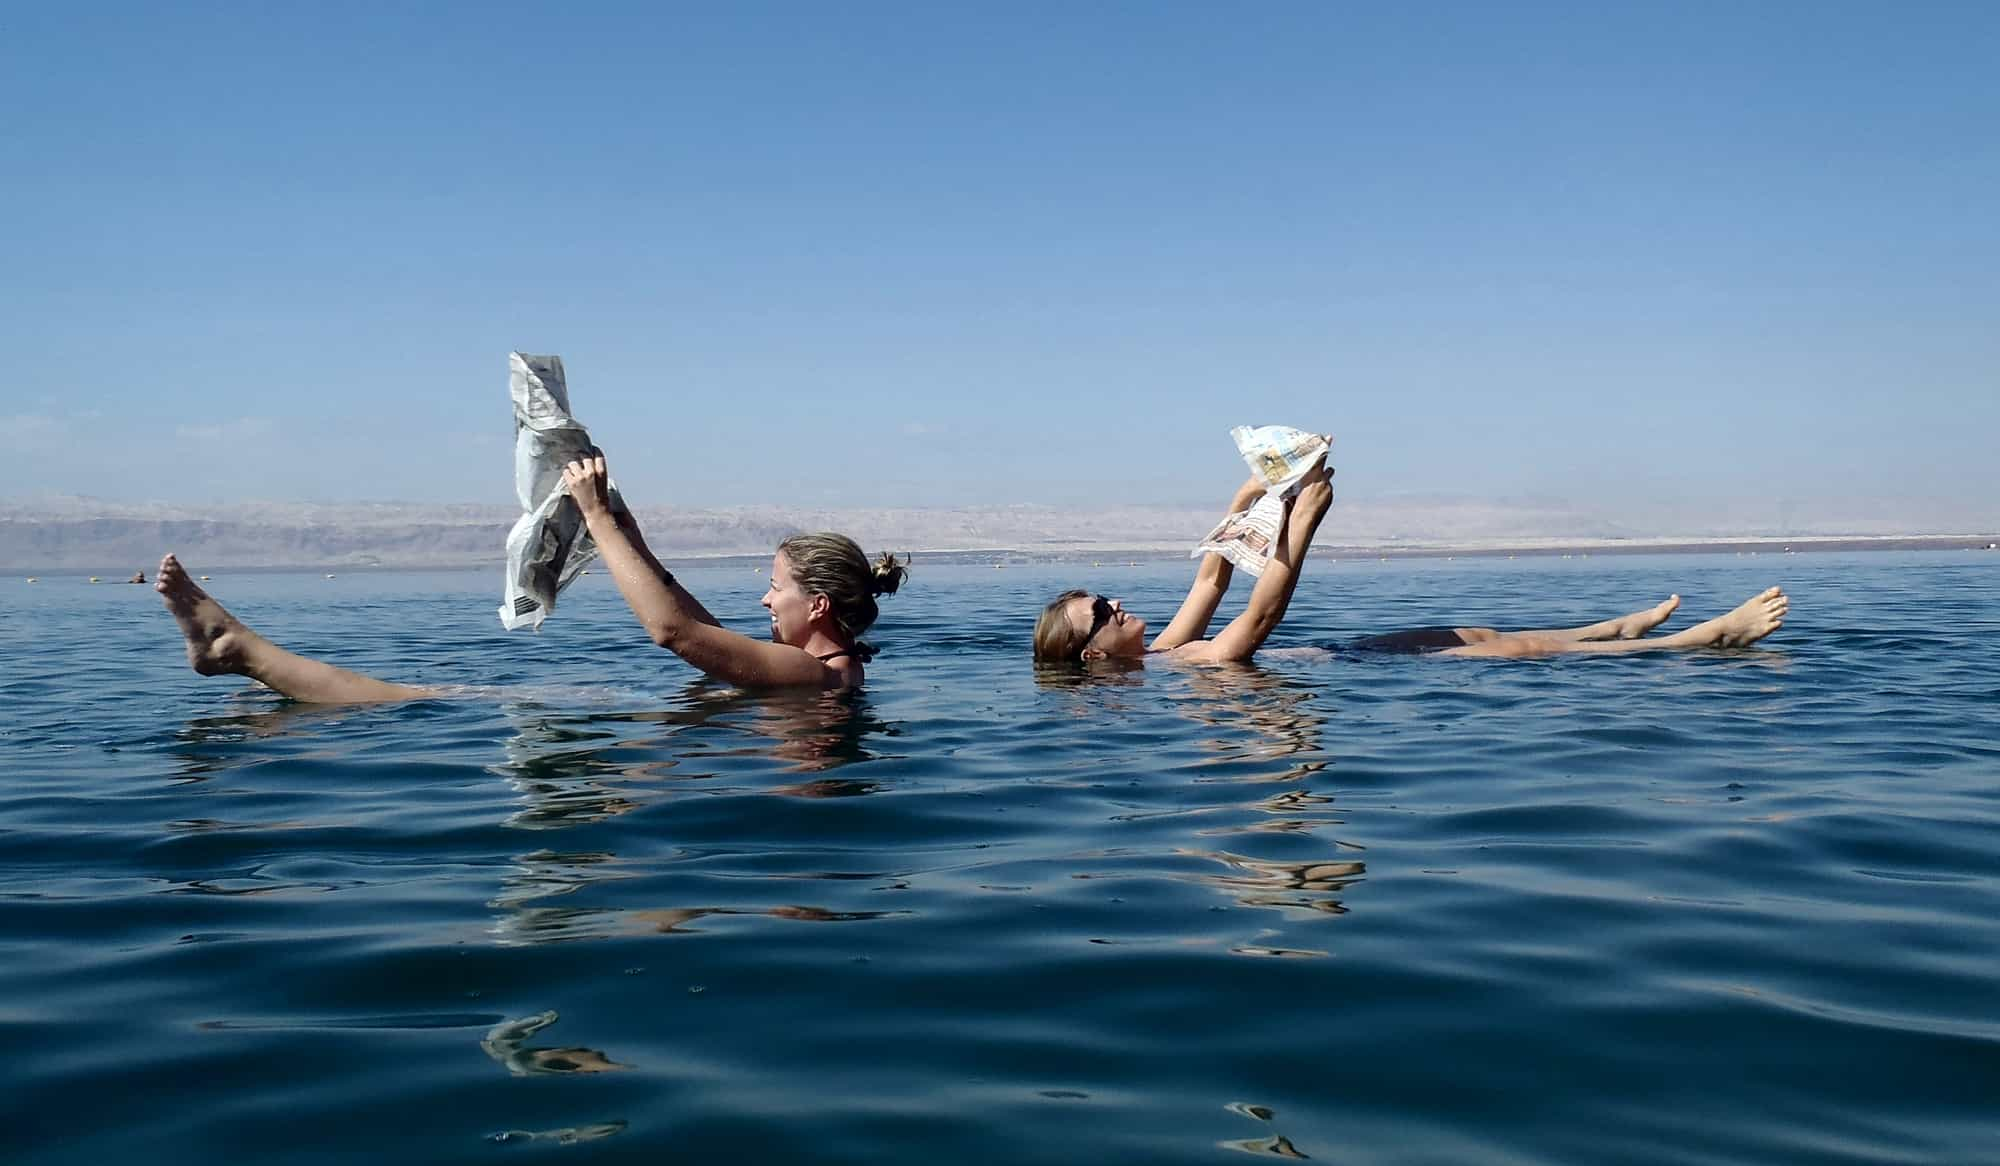 Reading newspapers while floating in the Dead Sea